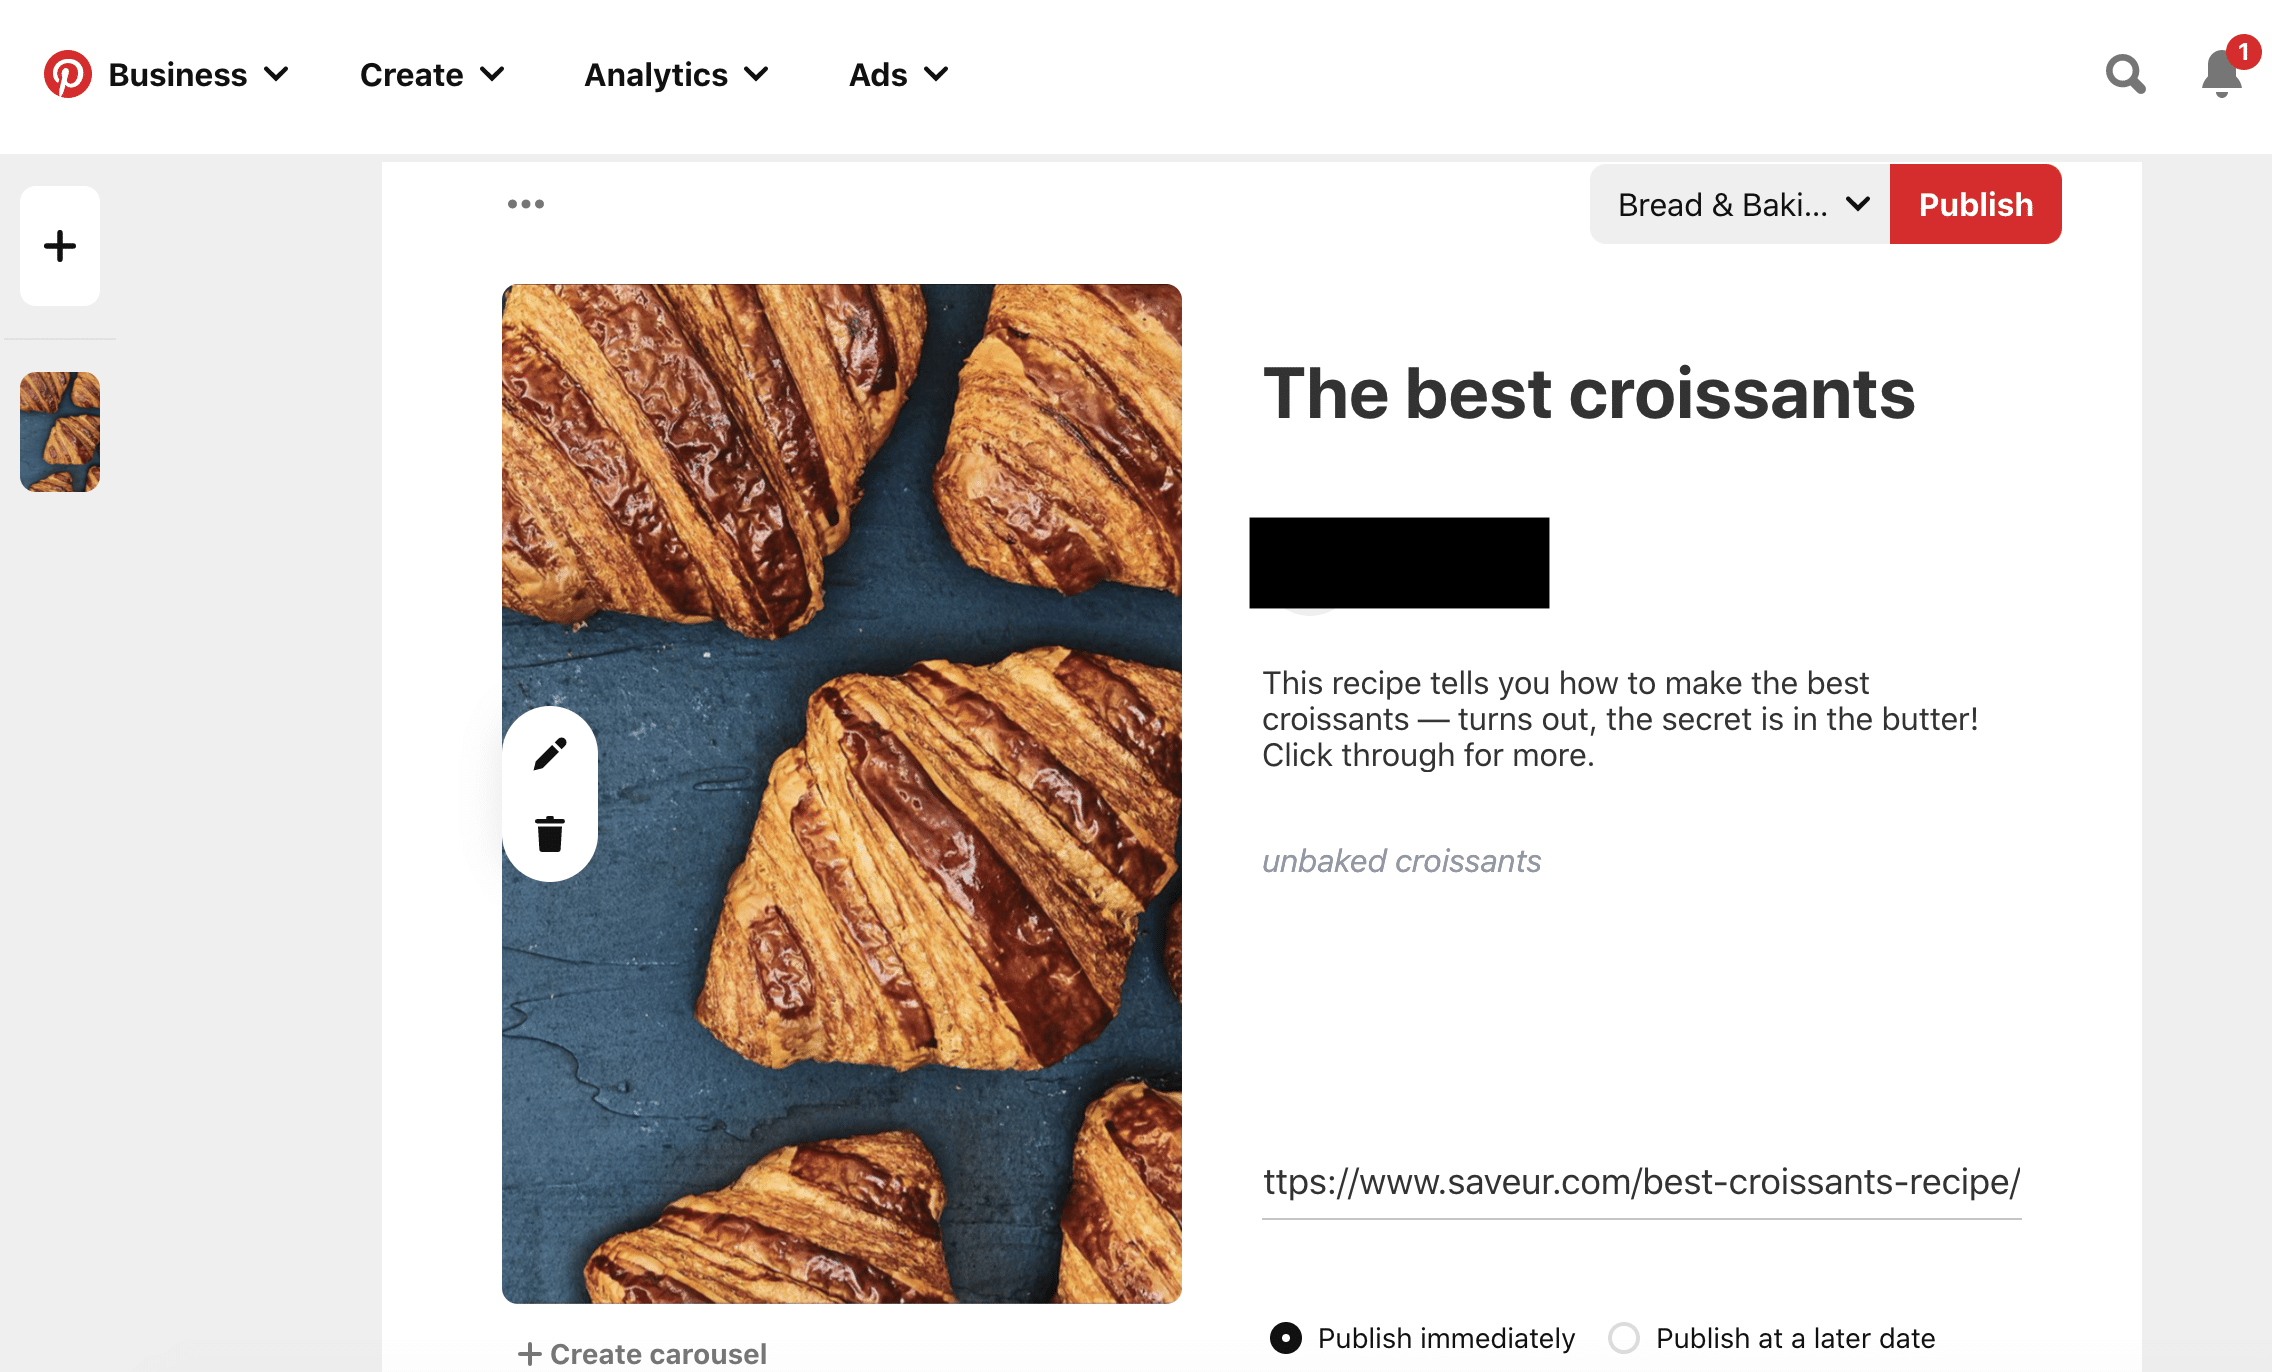 croissants bread and baking board